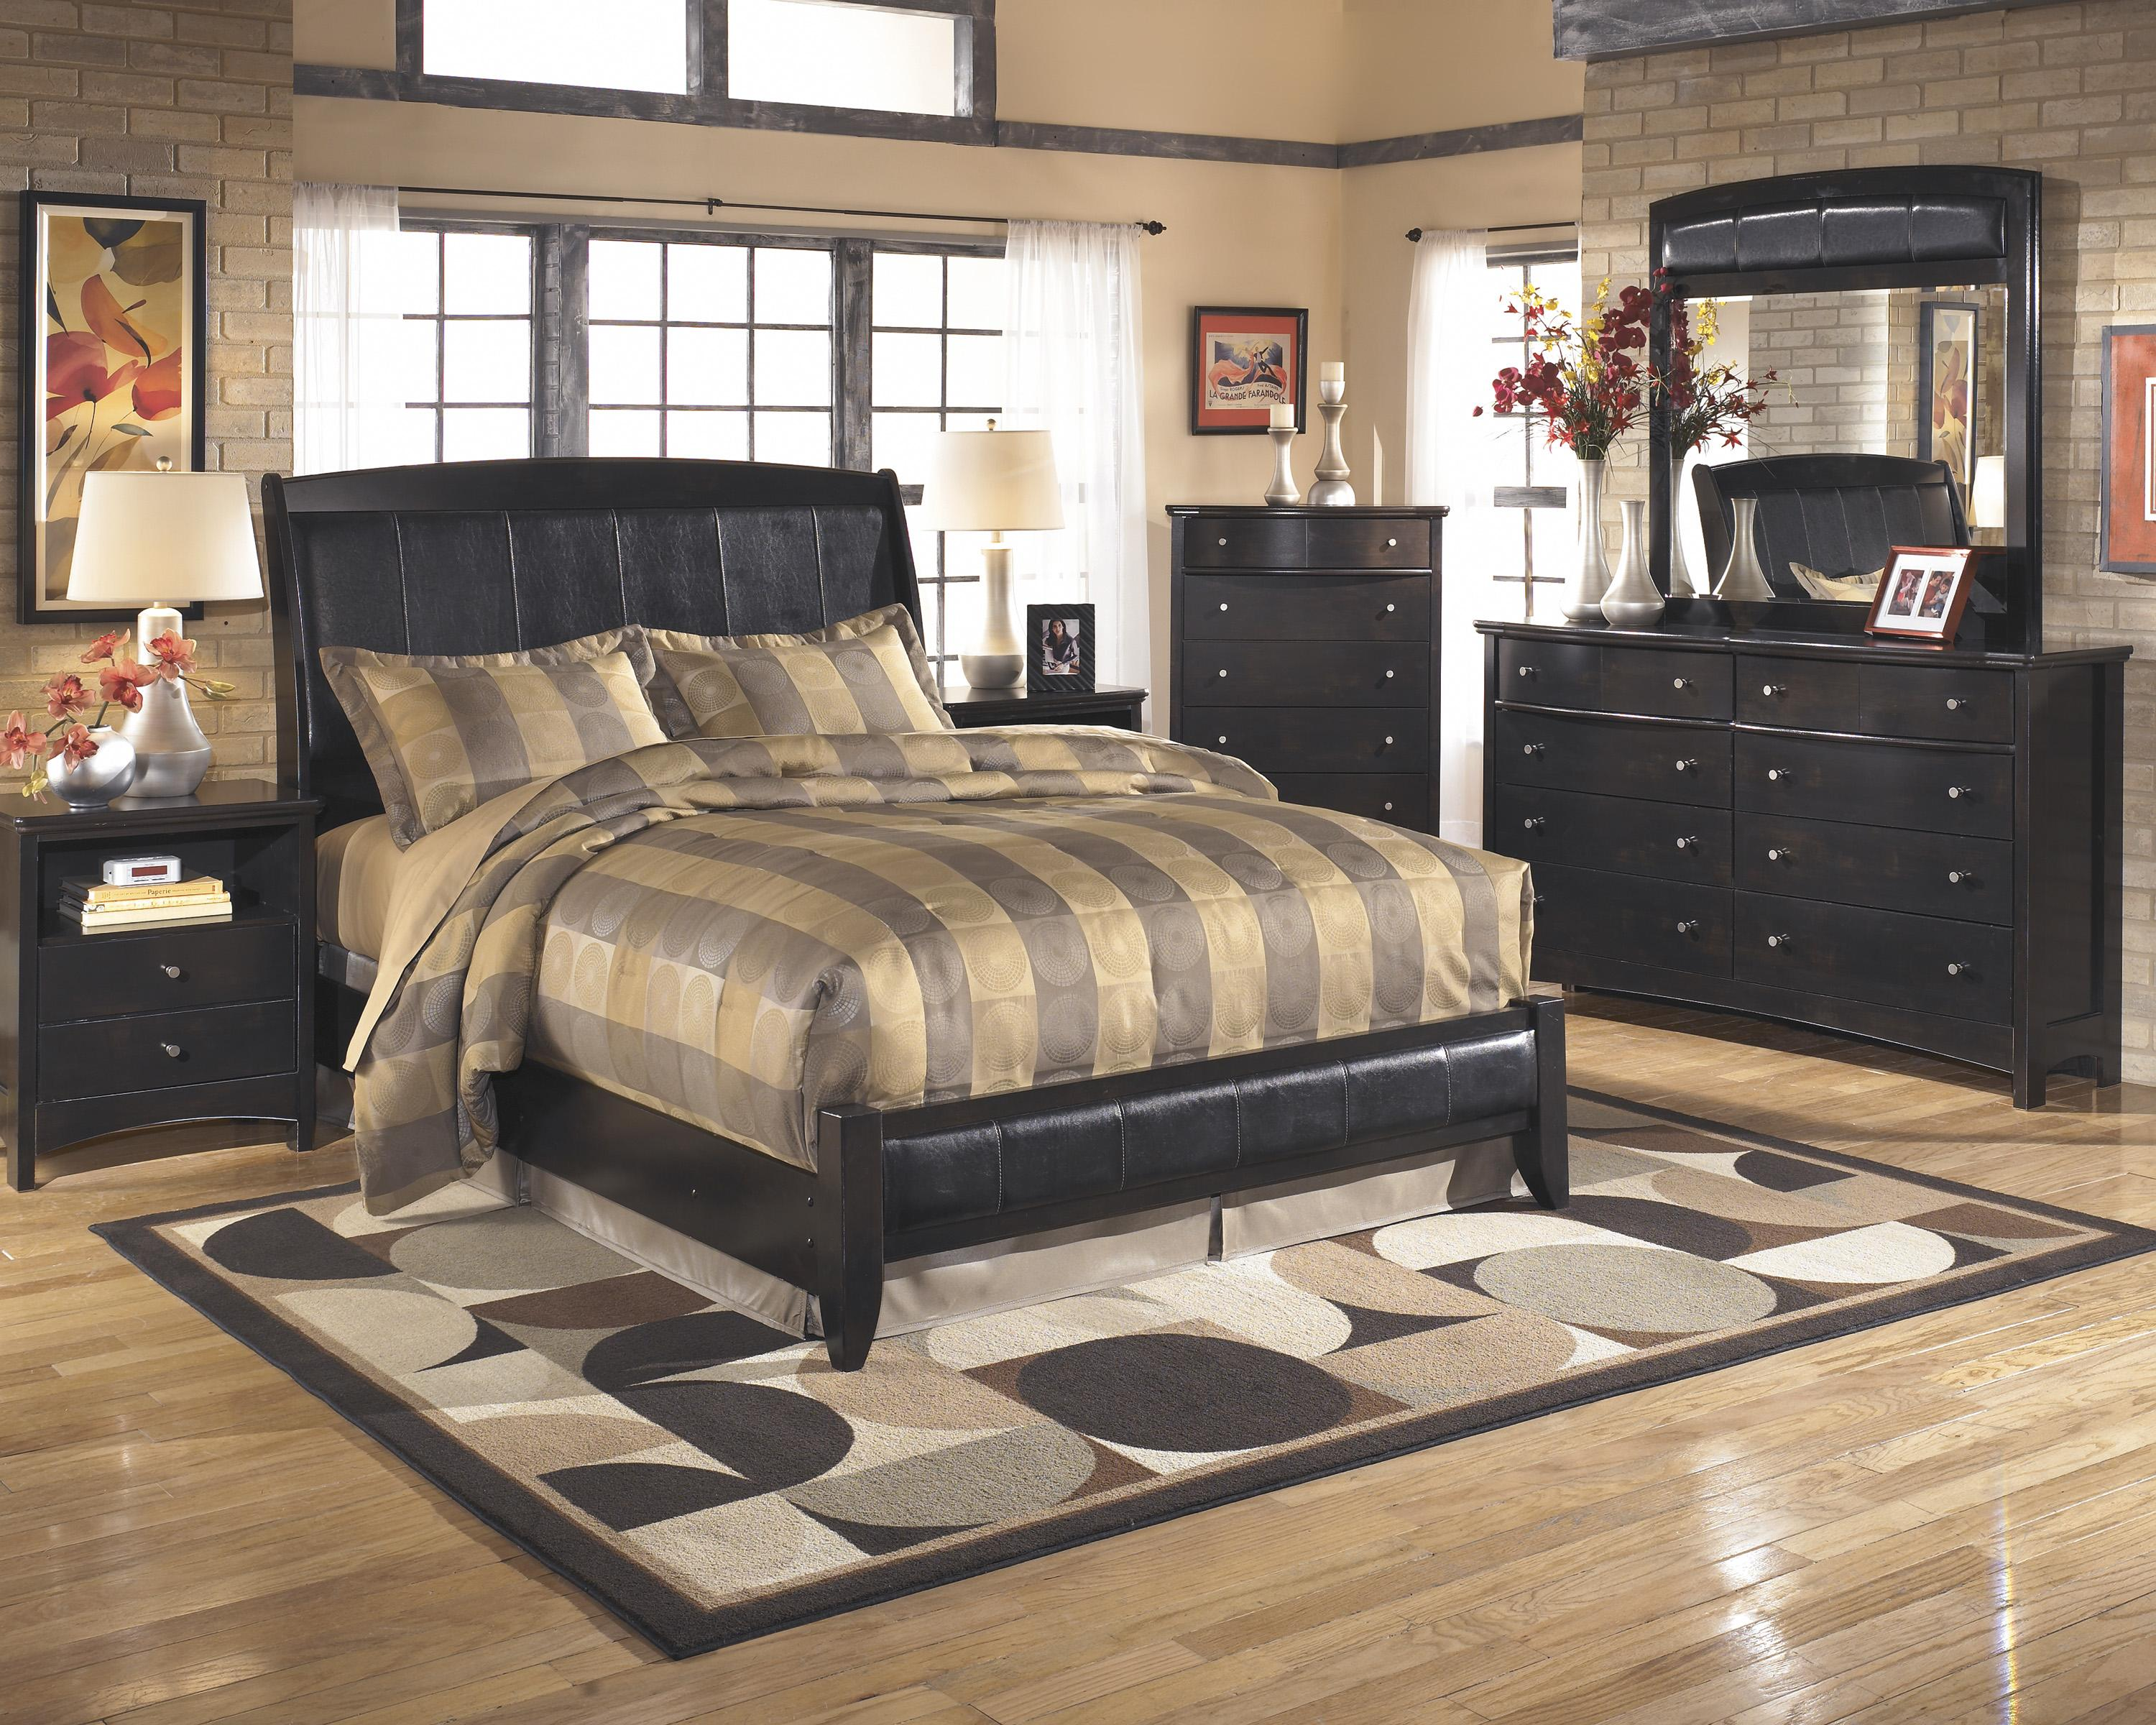 Signature Design by Ashley Harmony Queen Bedroom Group - Item Number: B208 Q Bedroom Group 1